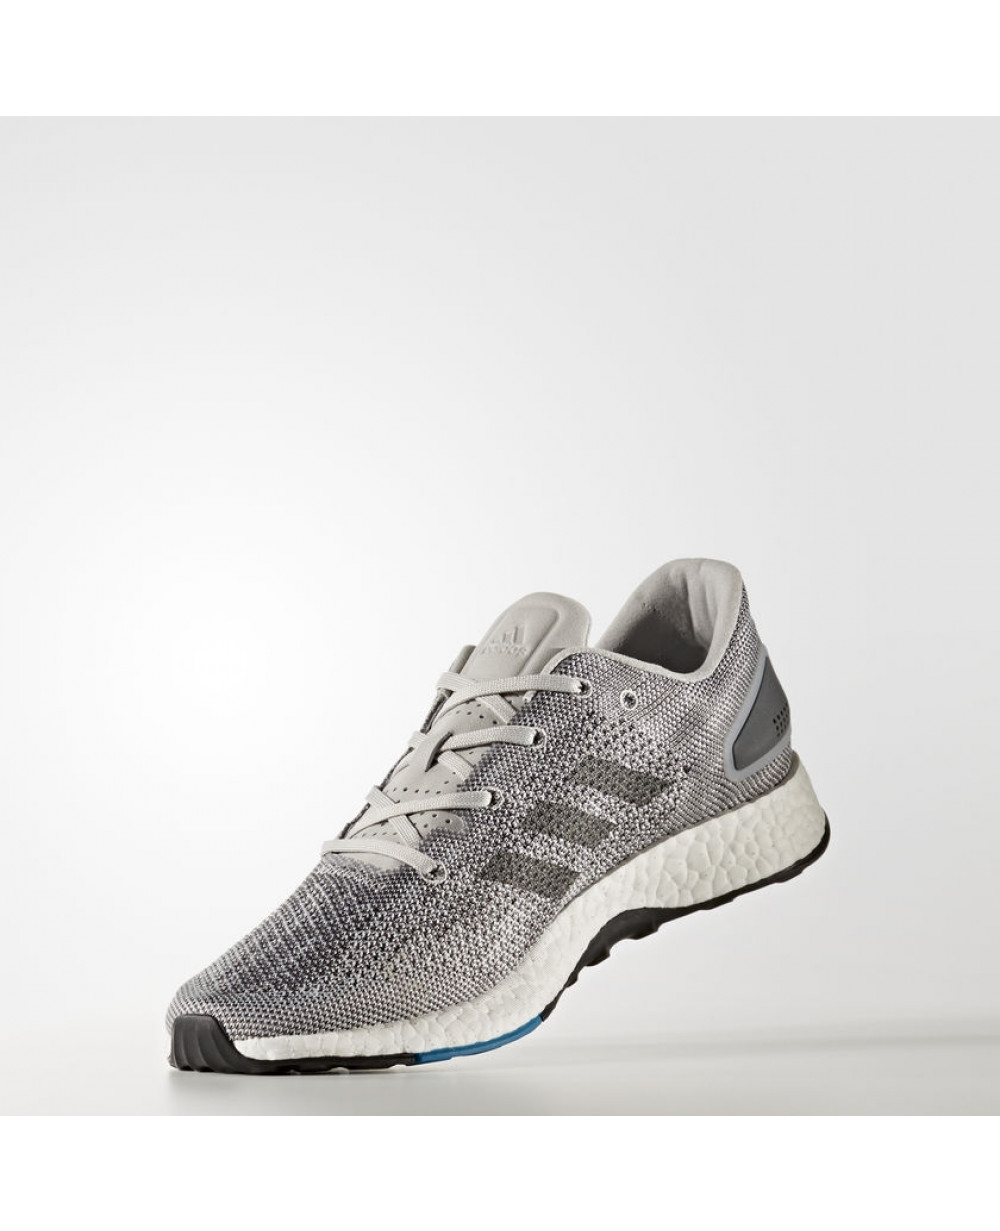 Adidas Pureboost DPR Running Shoes For